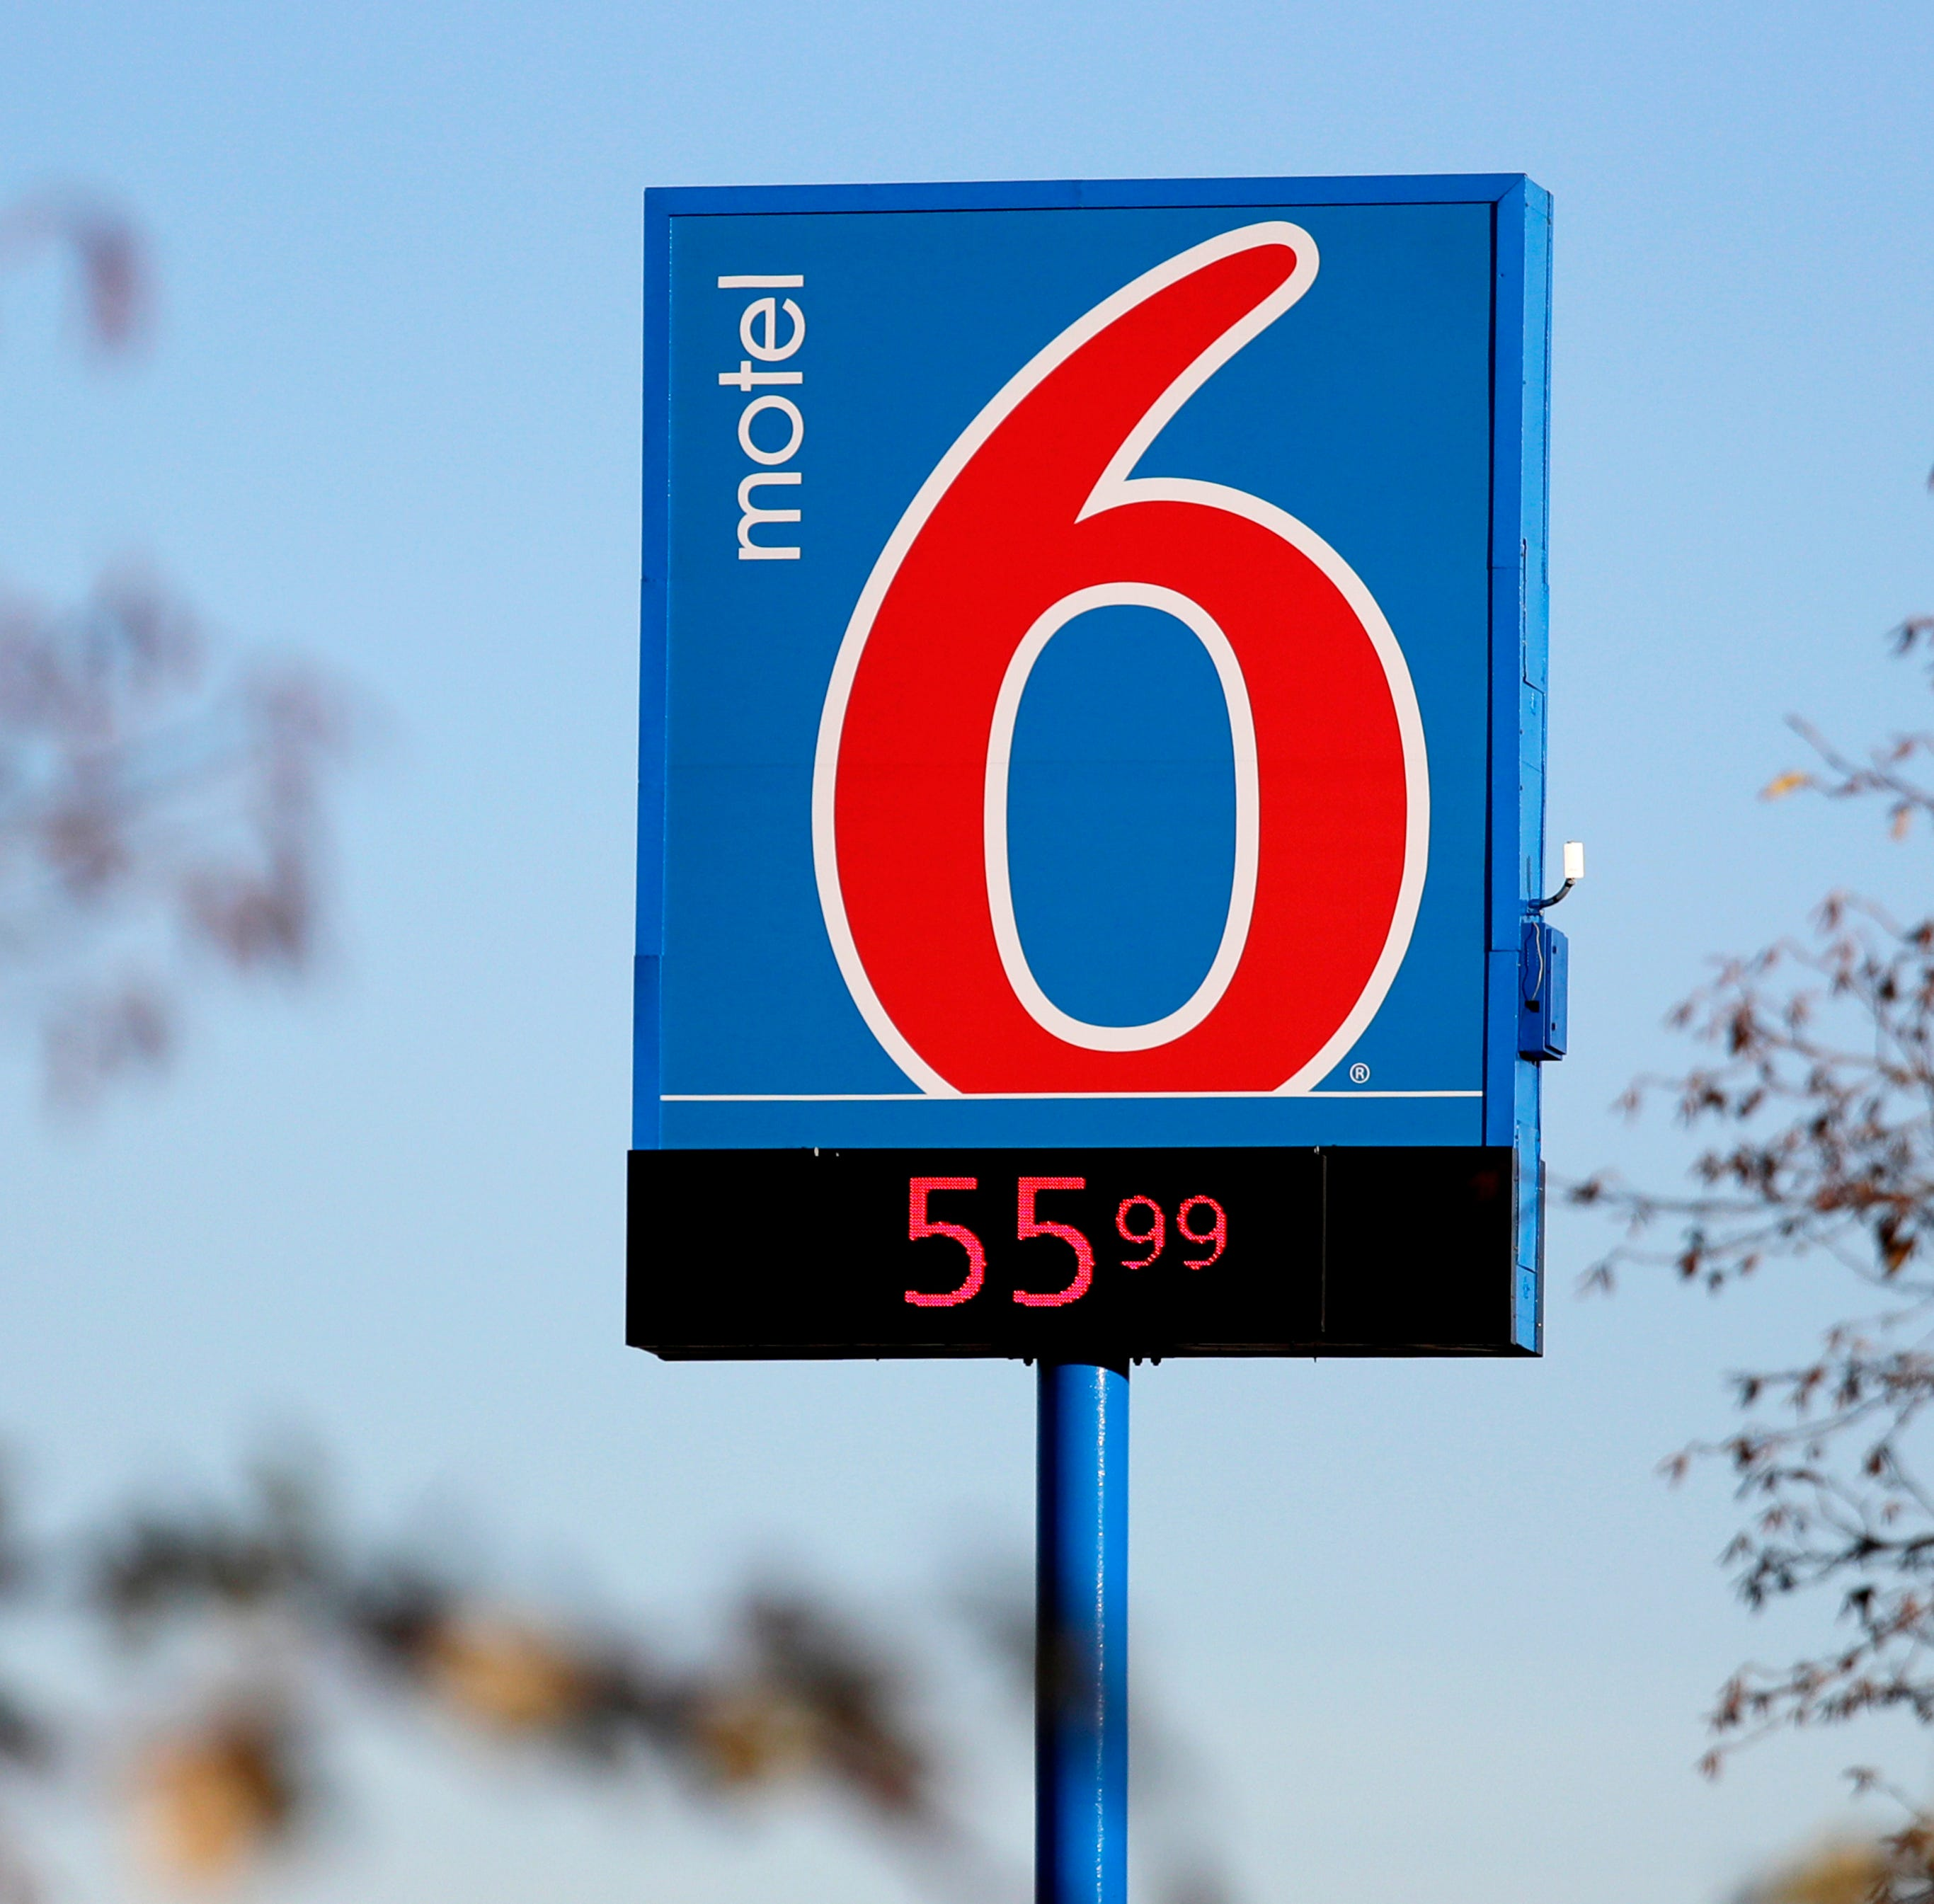 Motel 6 agrees to pay $12 million to settle lawsuit